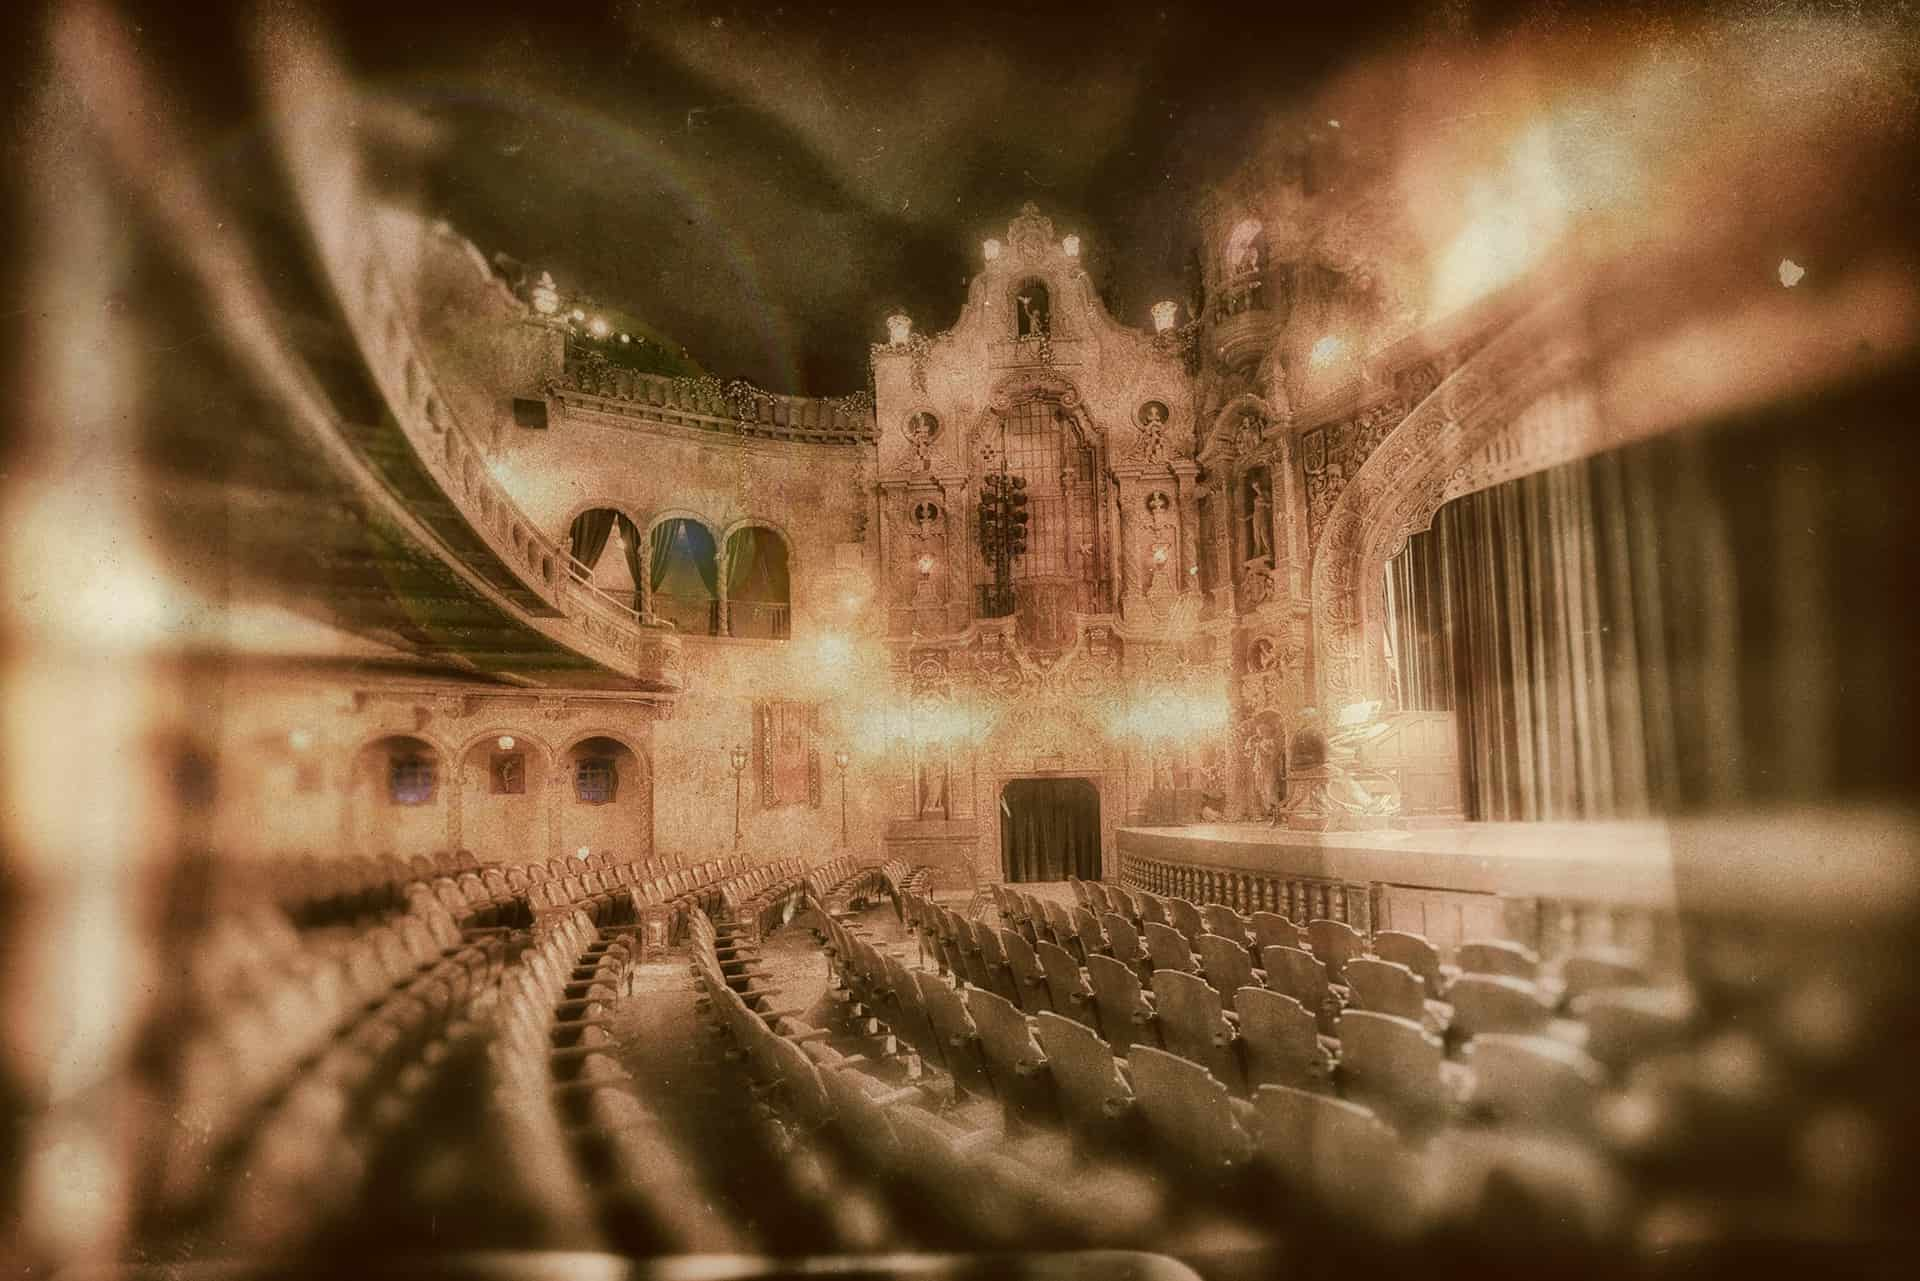 inside a large theatre with lights and a velvet curtain